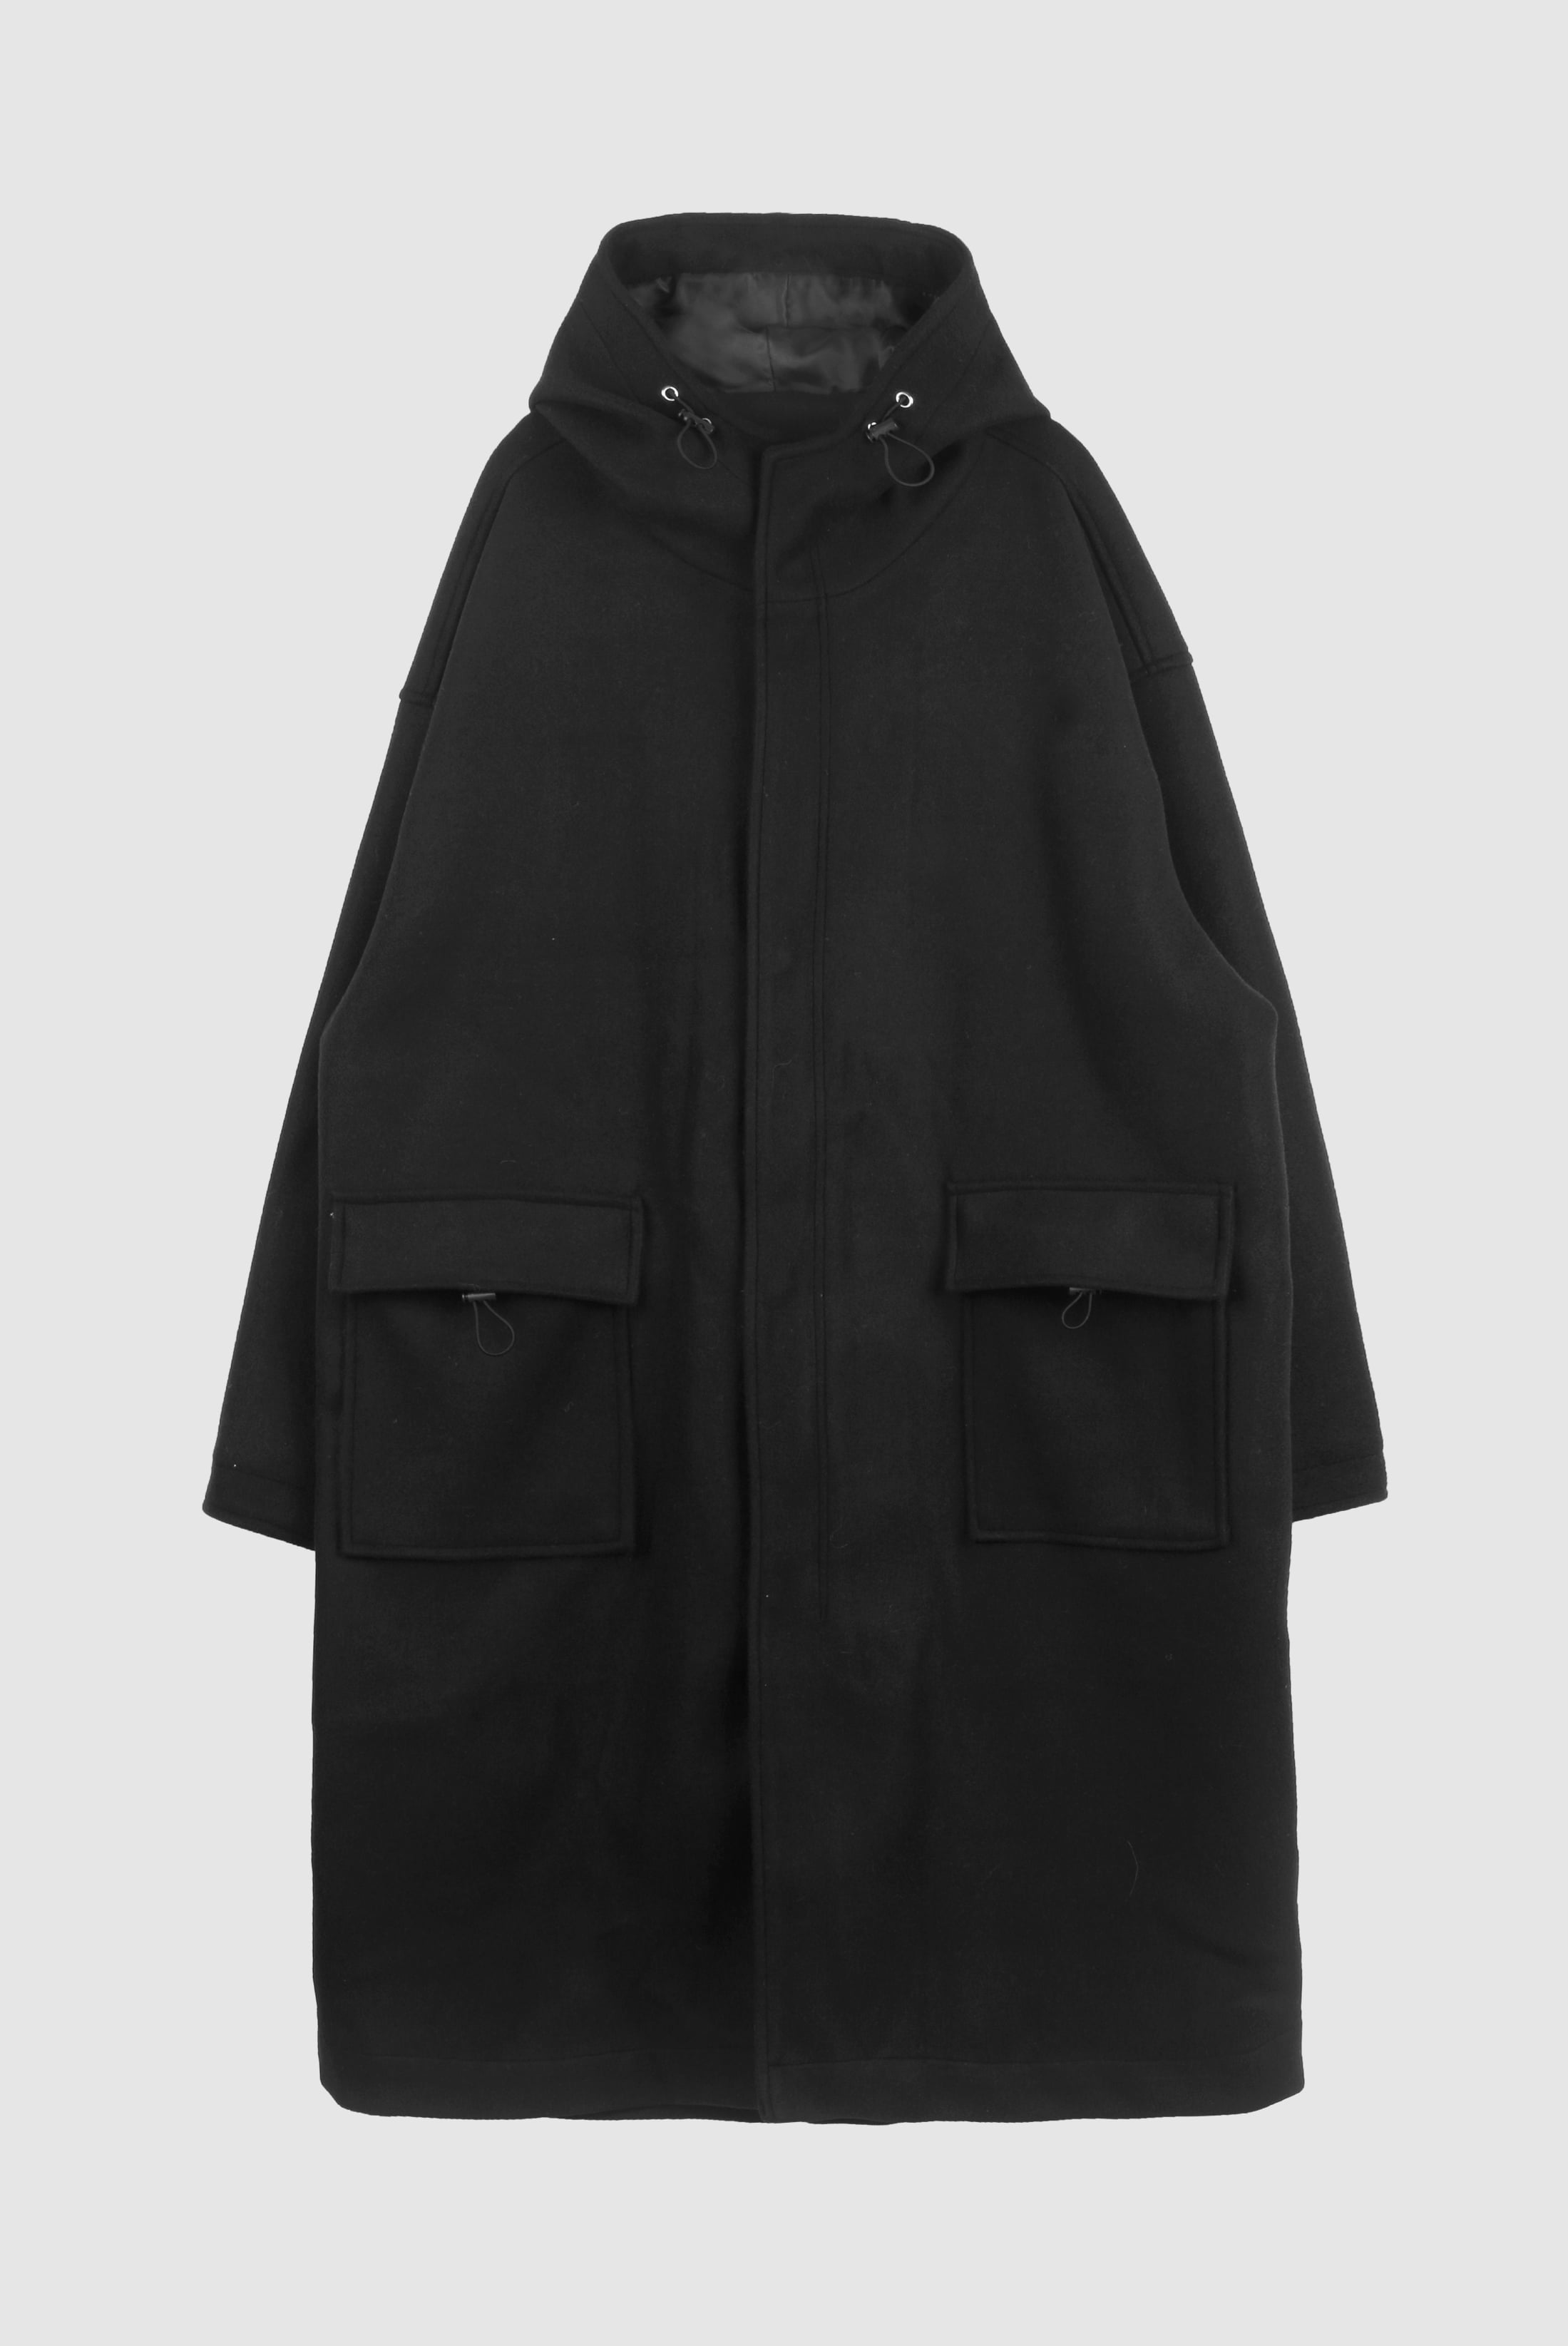 Over_Long String Hood_Coat